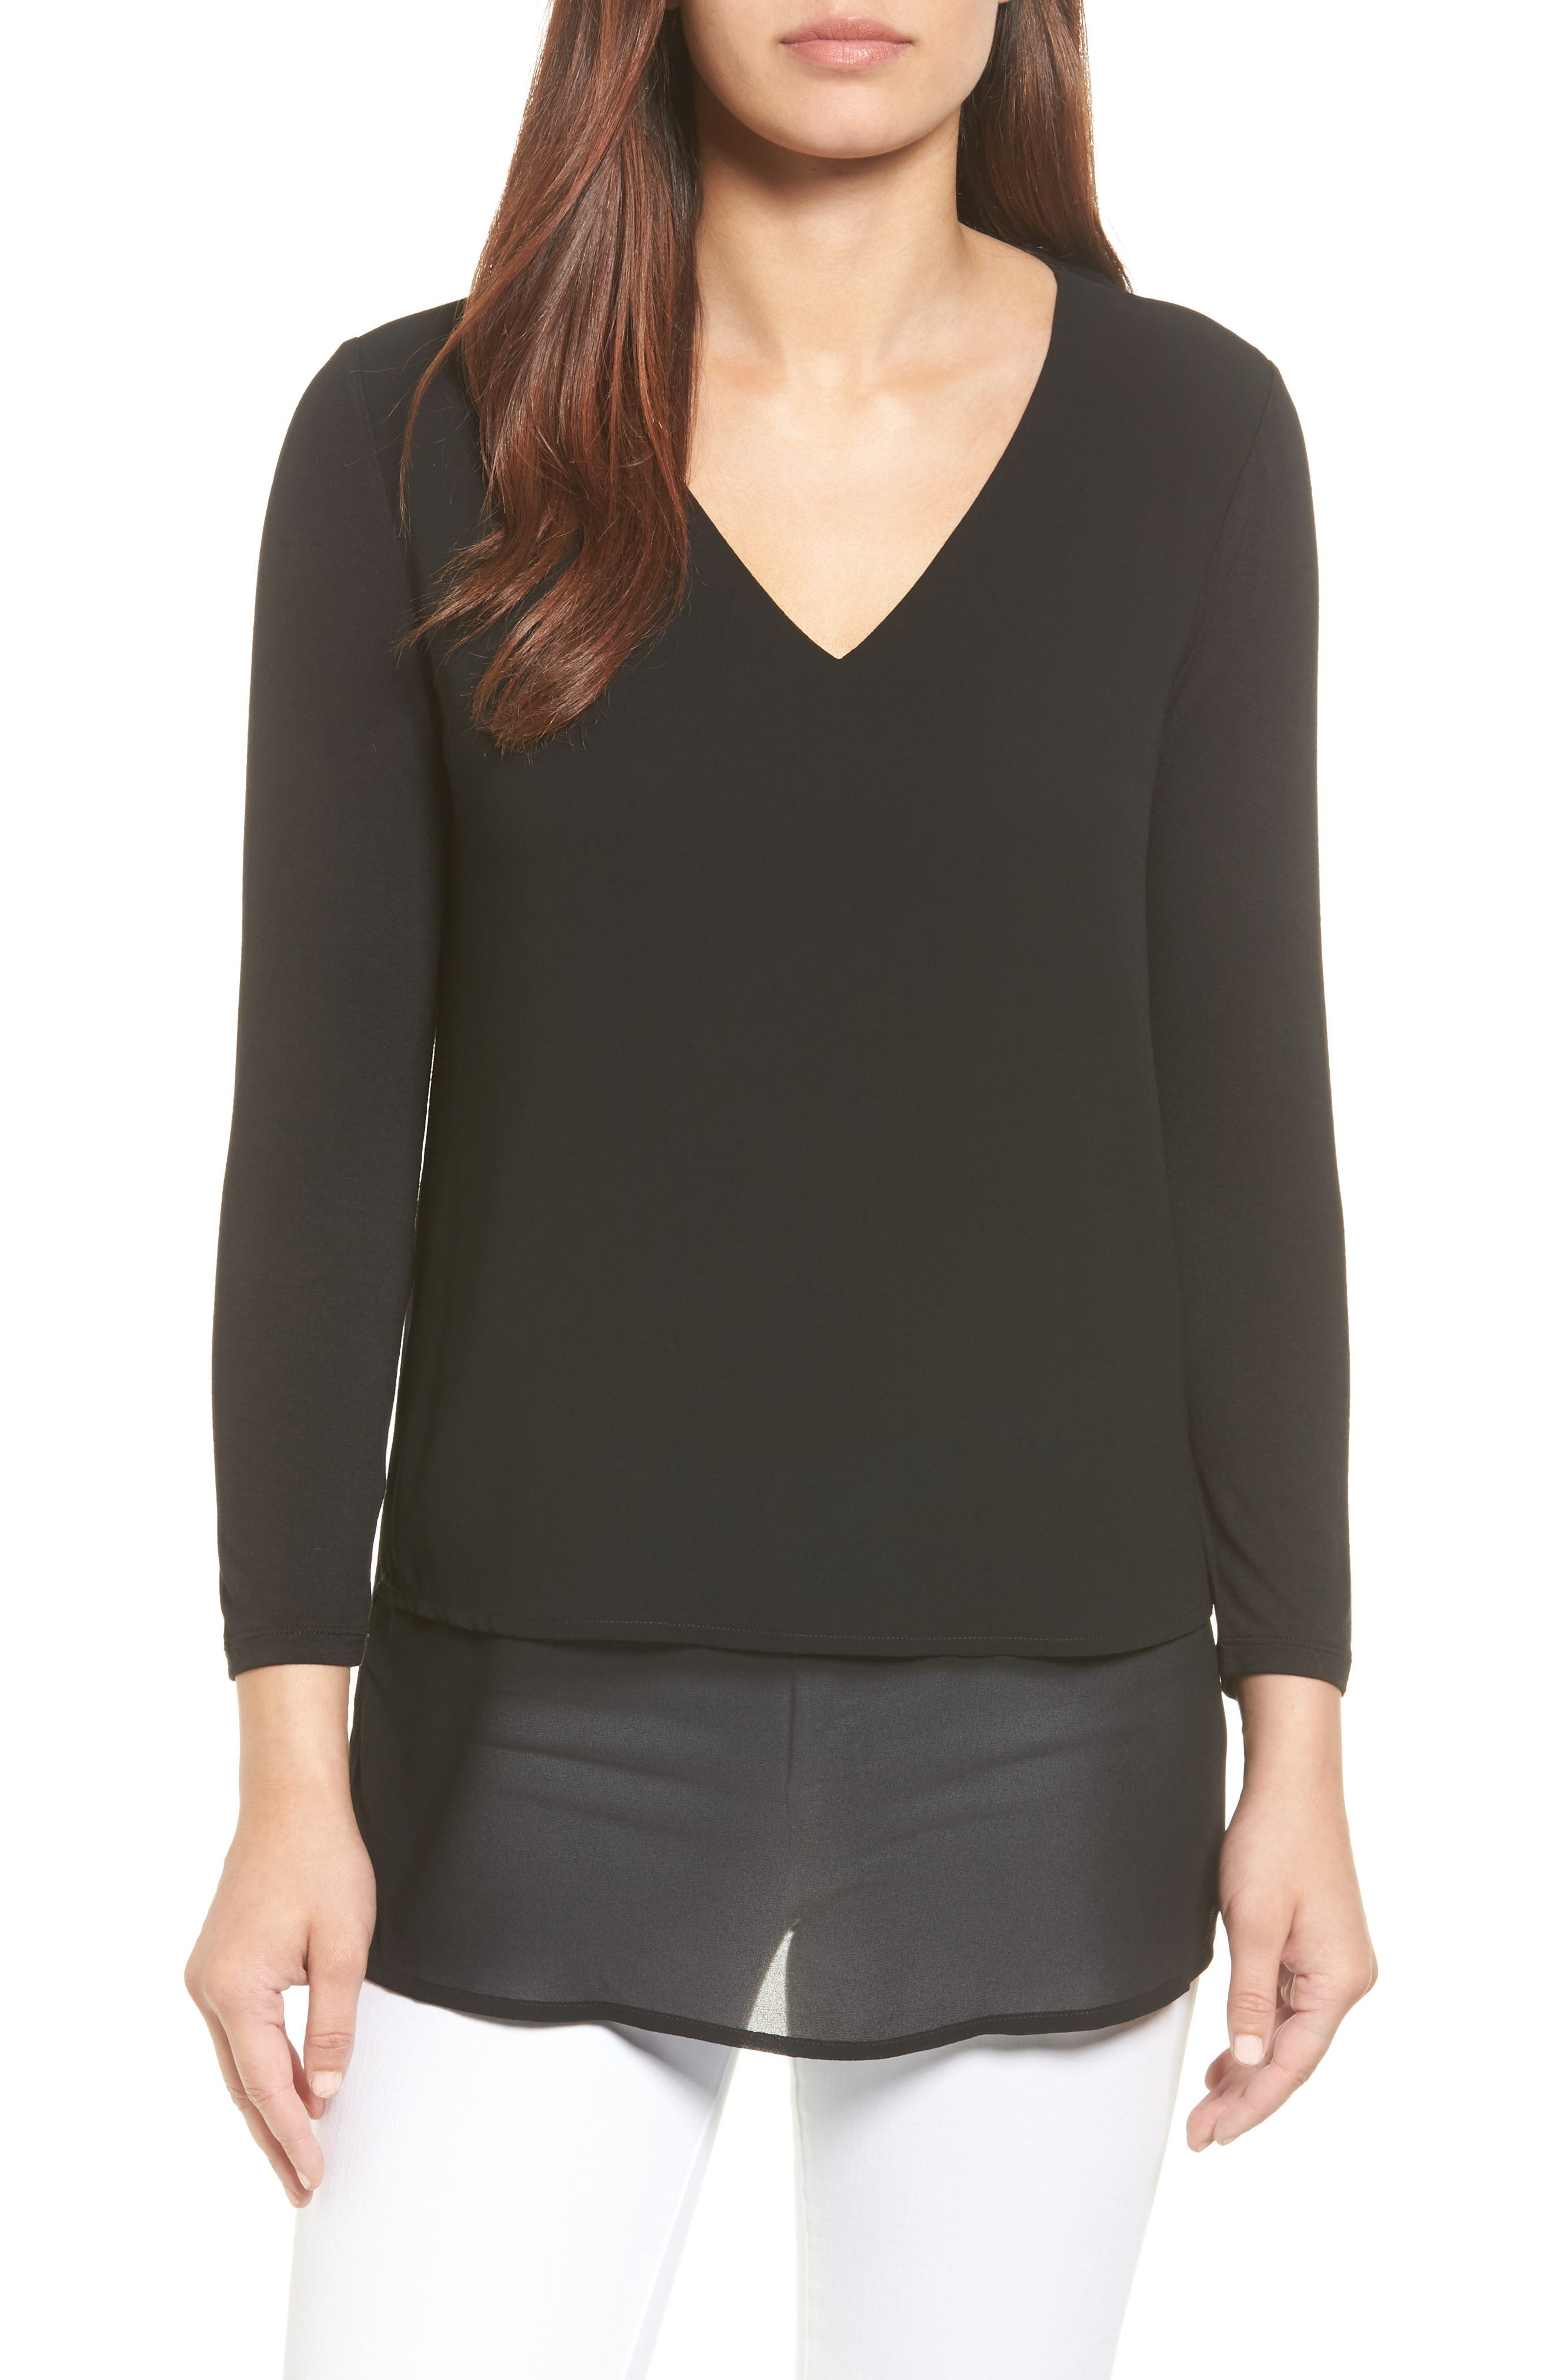 Alternate Image 1 Selected - MICHAEL Michael Kors Mixed Media V-Neck Top